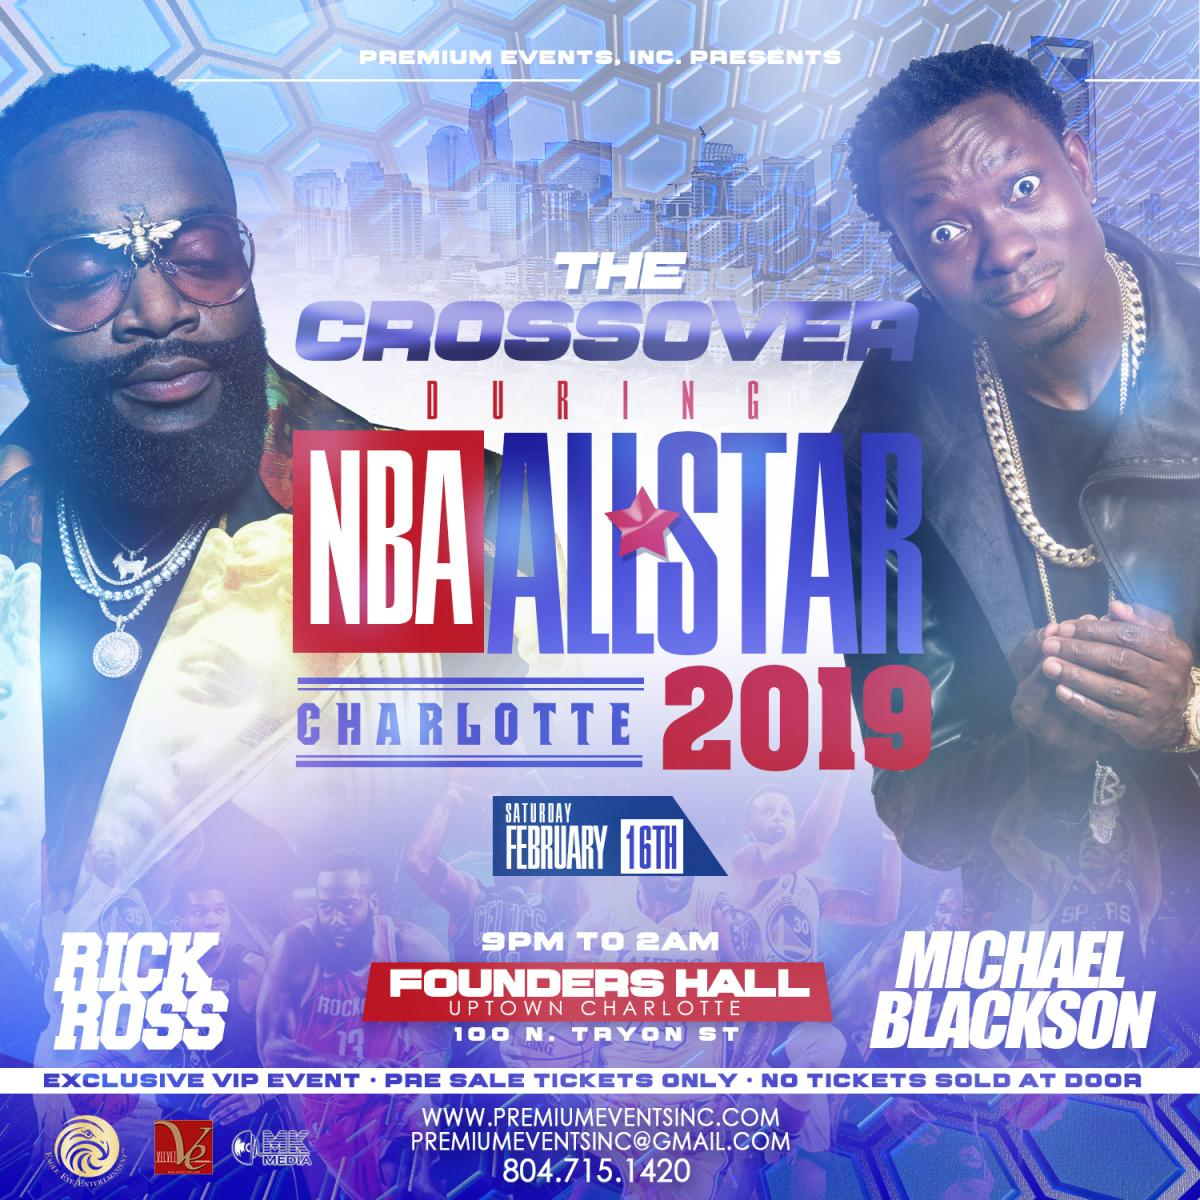 NBA All Star 2019 'The Crossover'